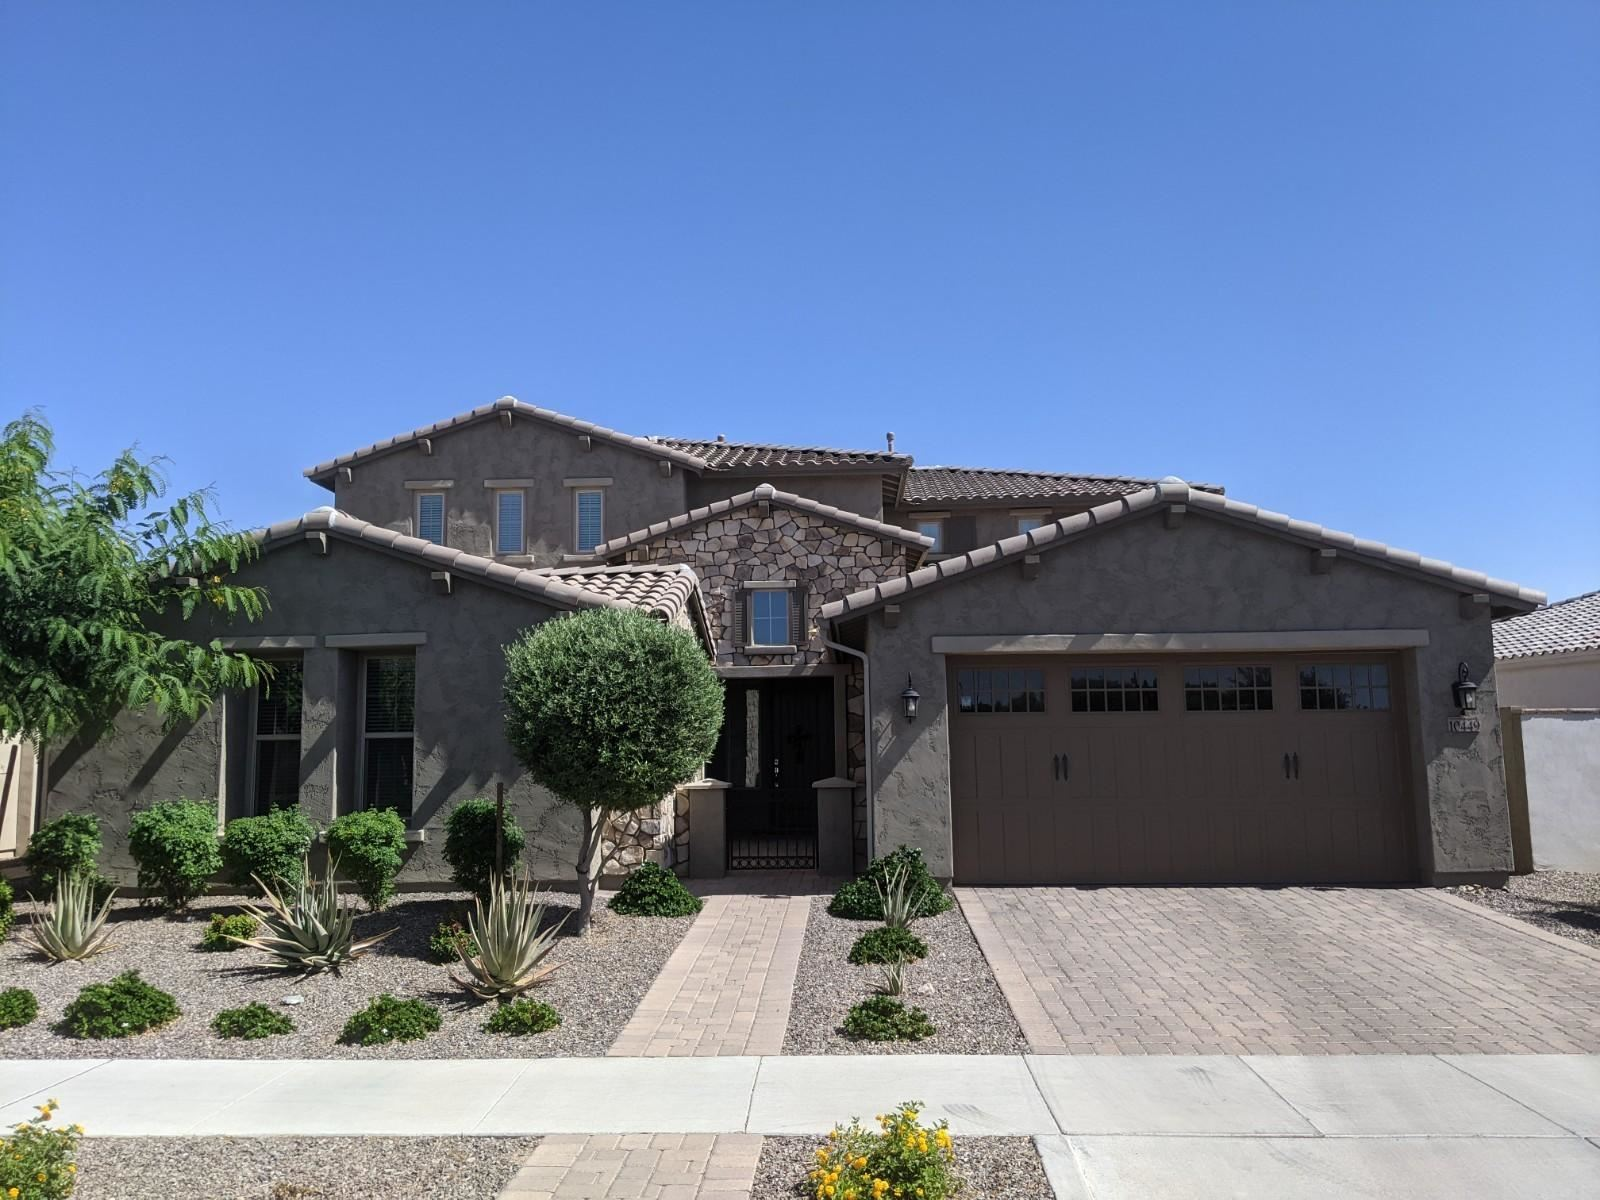 10449 E SHEFFIELD Drive, Mesa, AZ 85212 - MLS#: 6234509